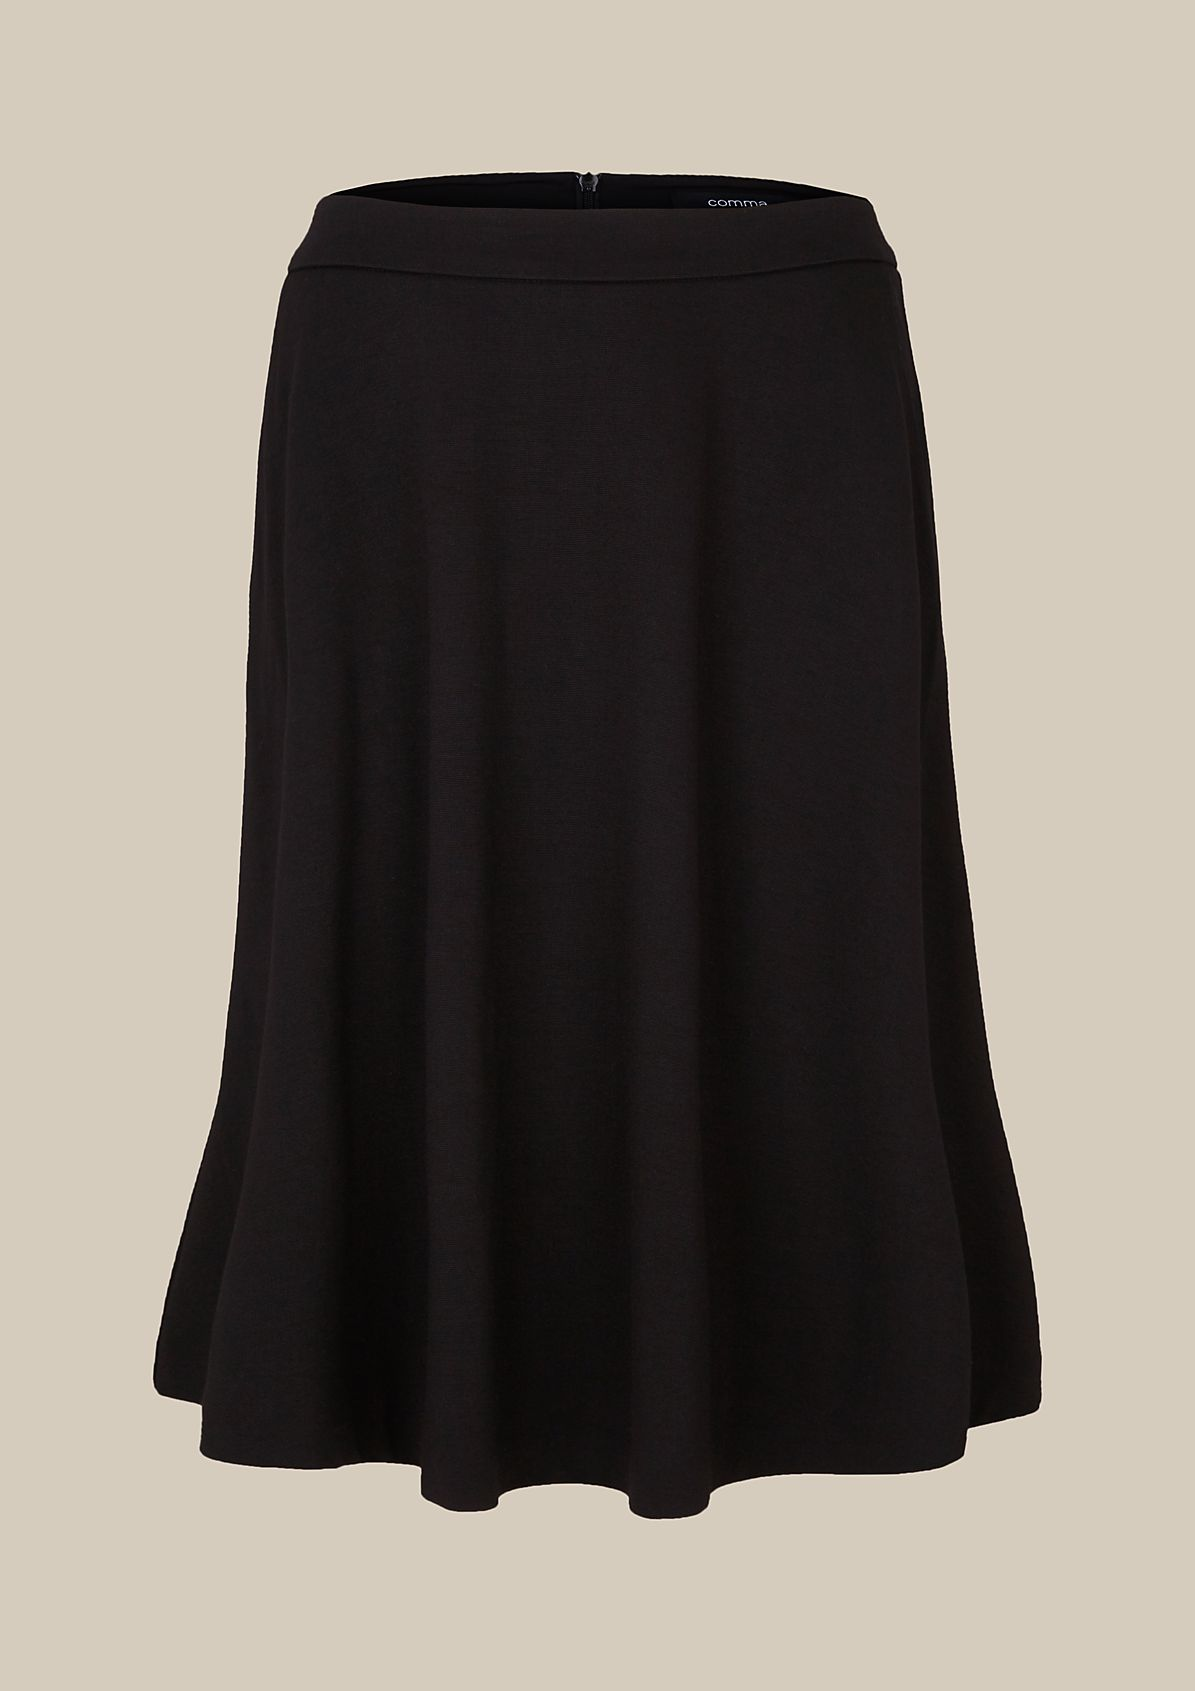 Feminine skirt with beautiful details from s.Oliver